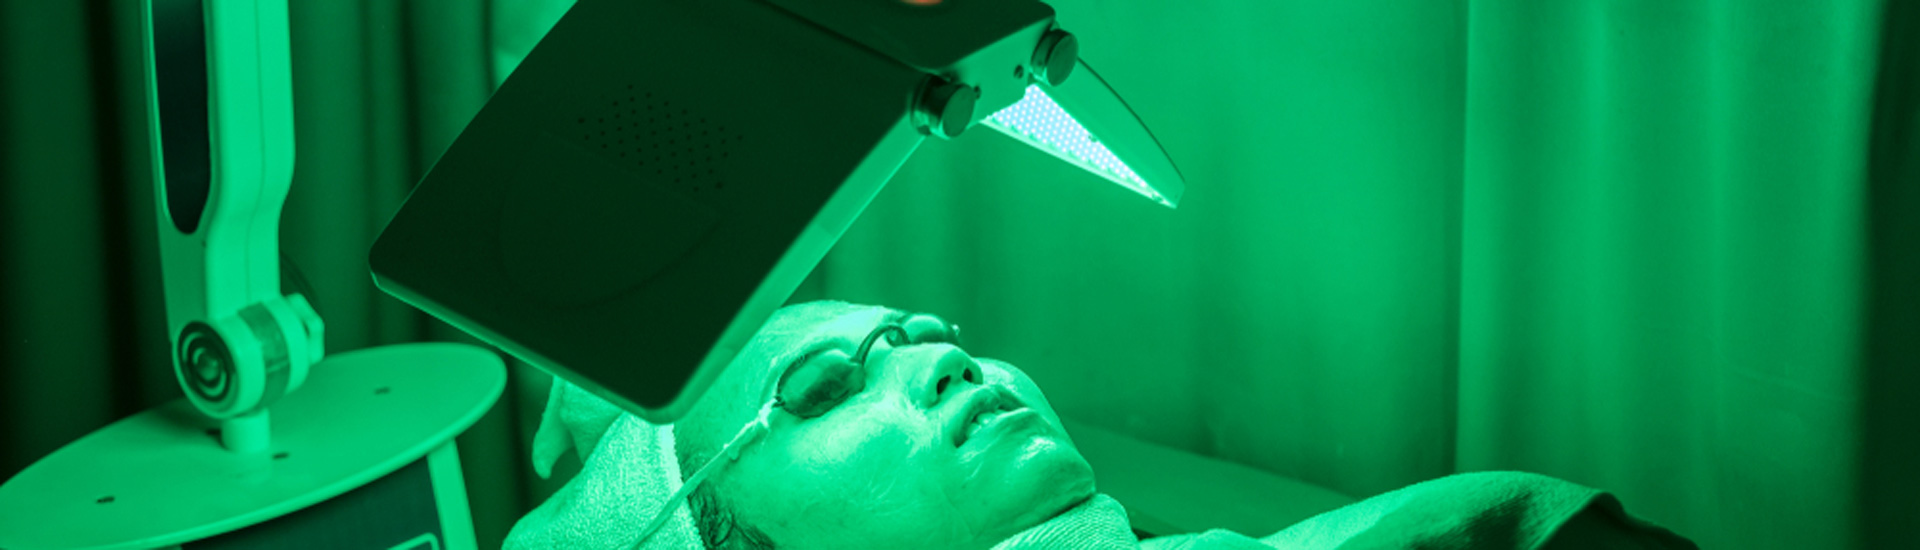 Facial face by photodynamic therapy.